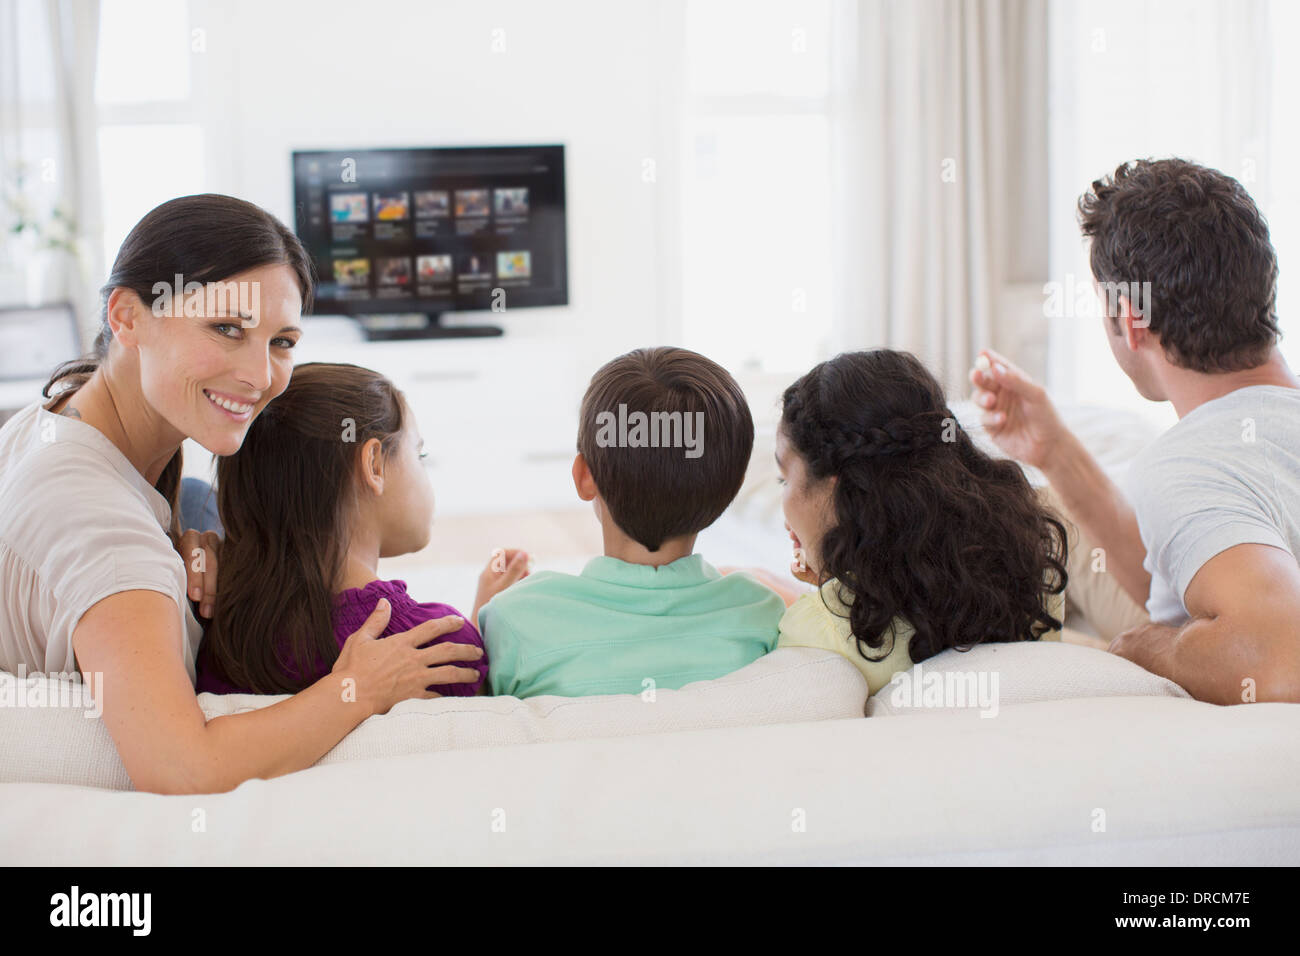 Family watching tv in living room stock photo royalty for Living room channel 7